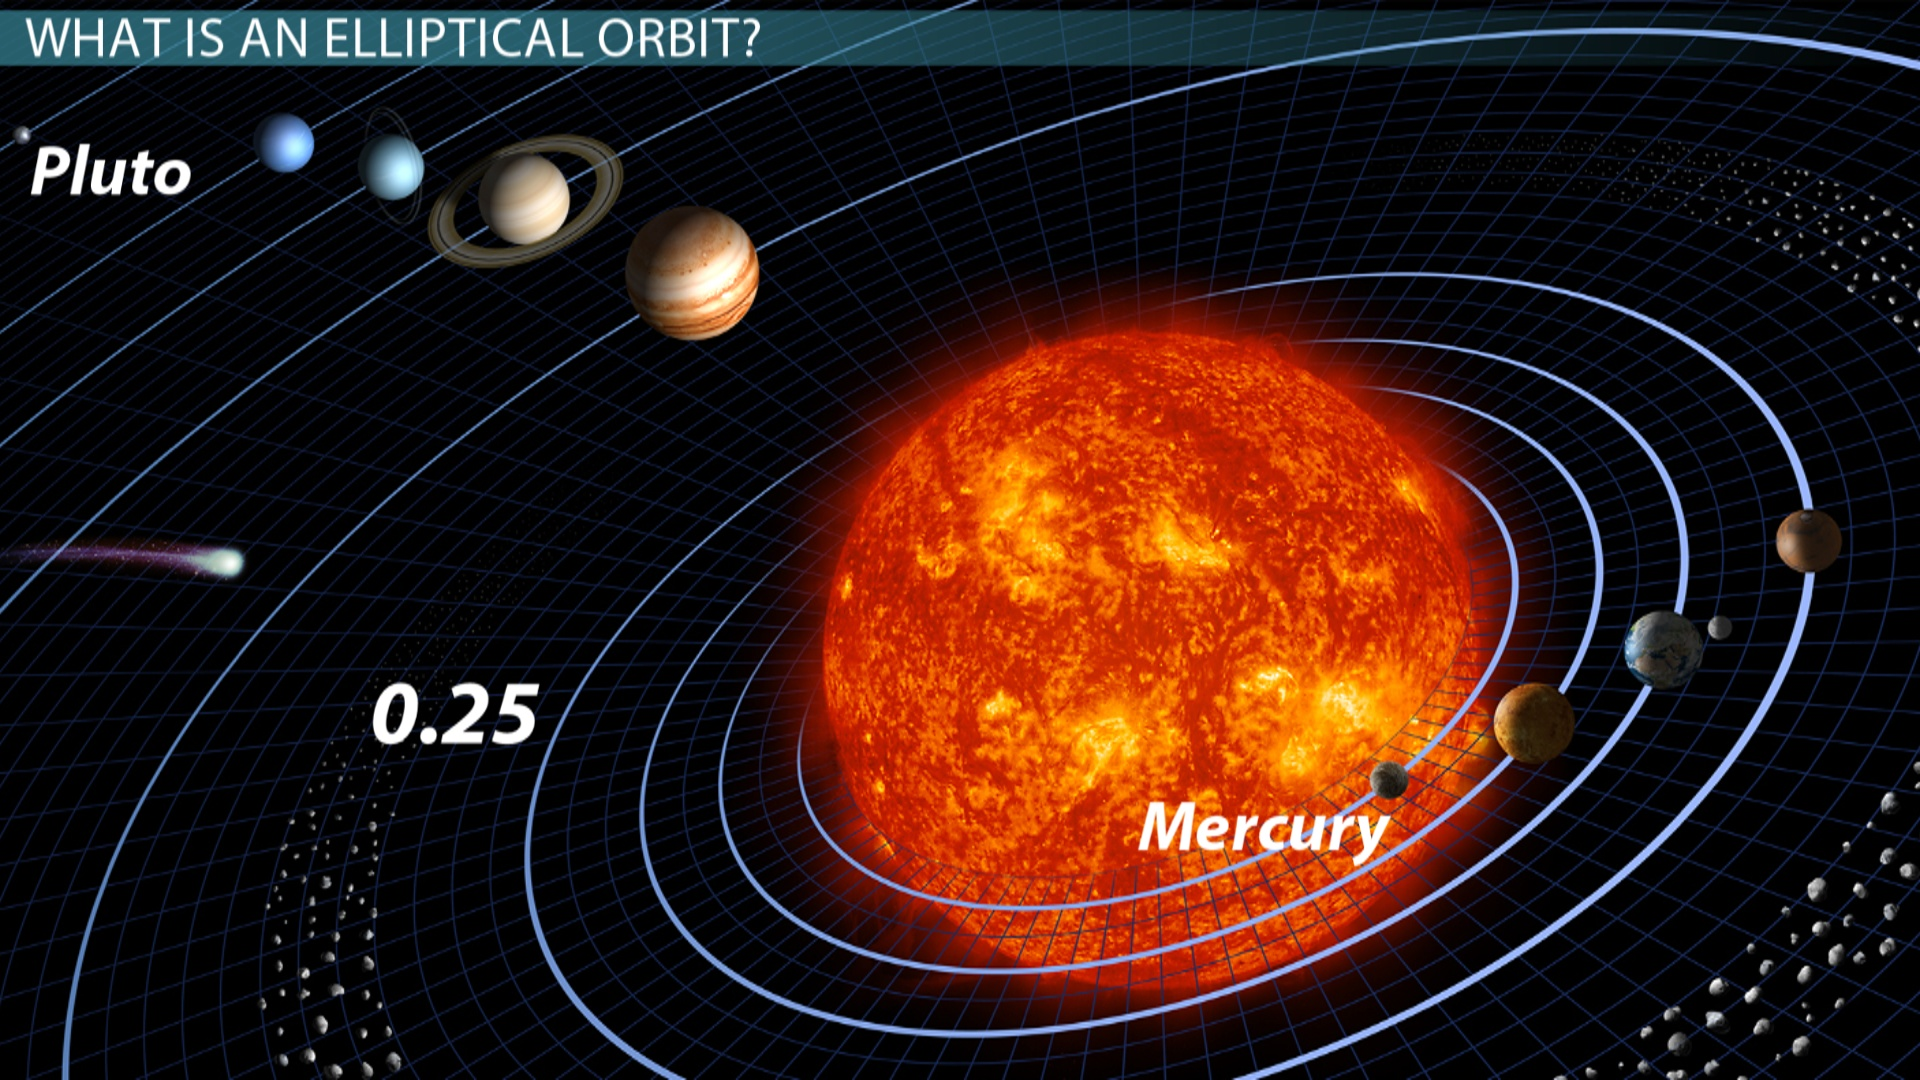 elliptical orbits  periods  u0026 speeds